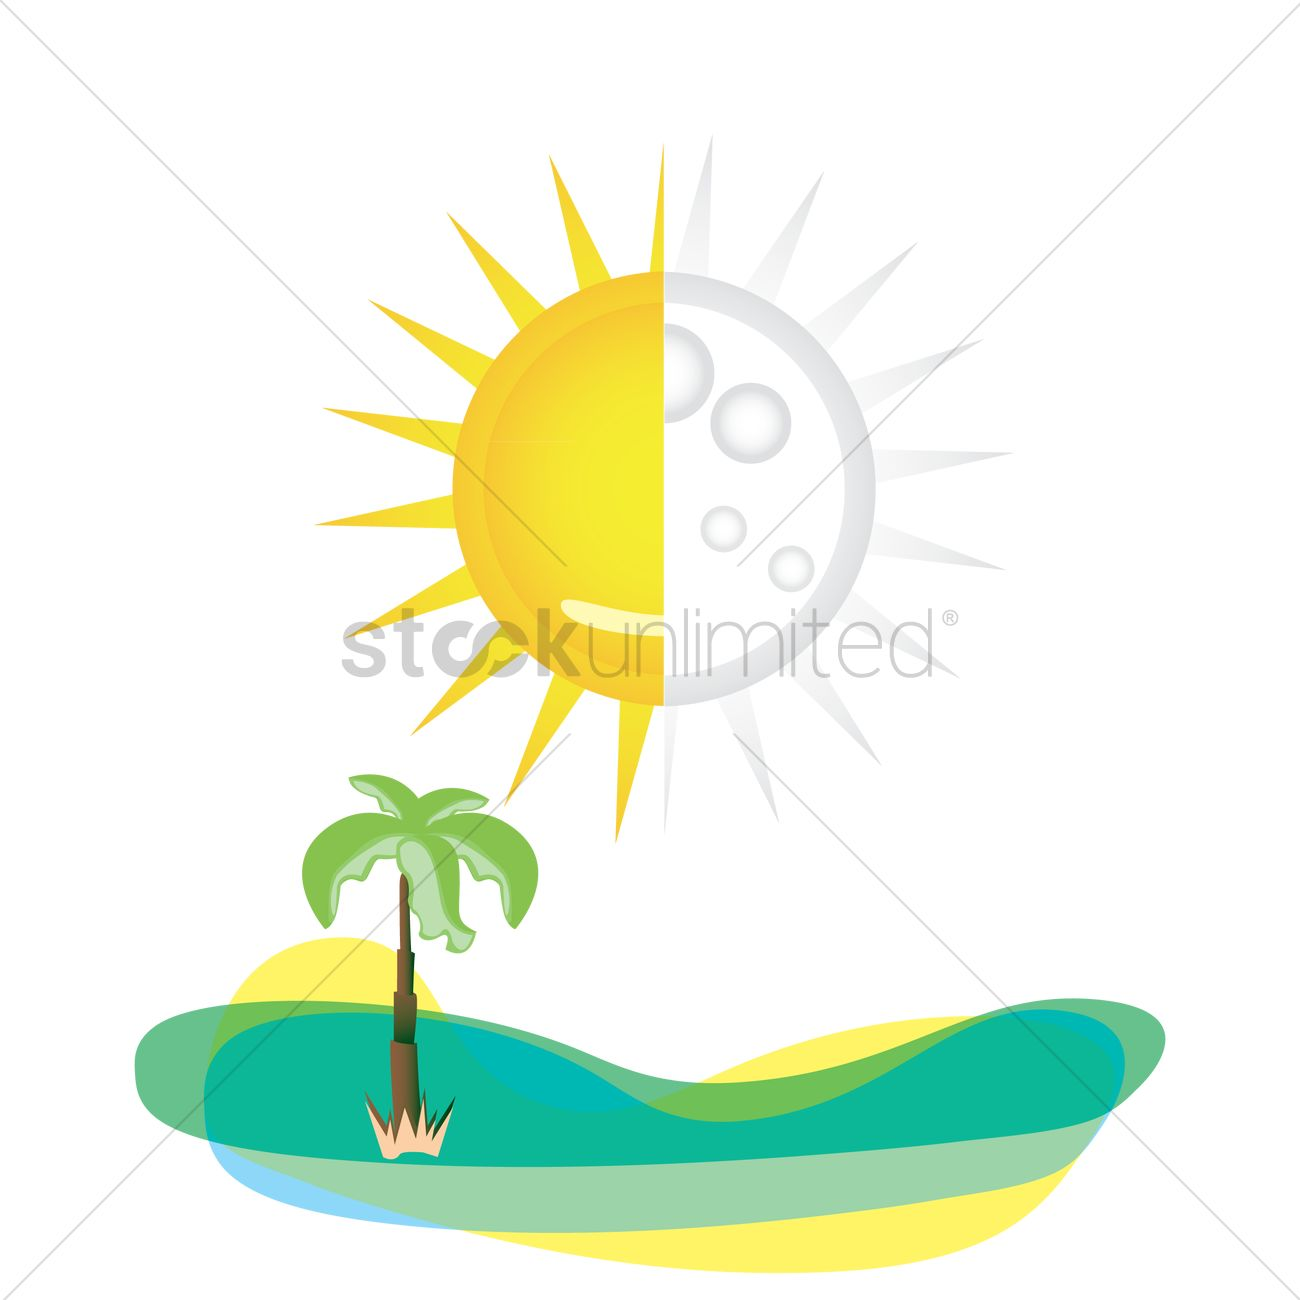 Half Sun With Palm Tree Vector Image 1290032 Stockunlimited